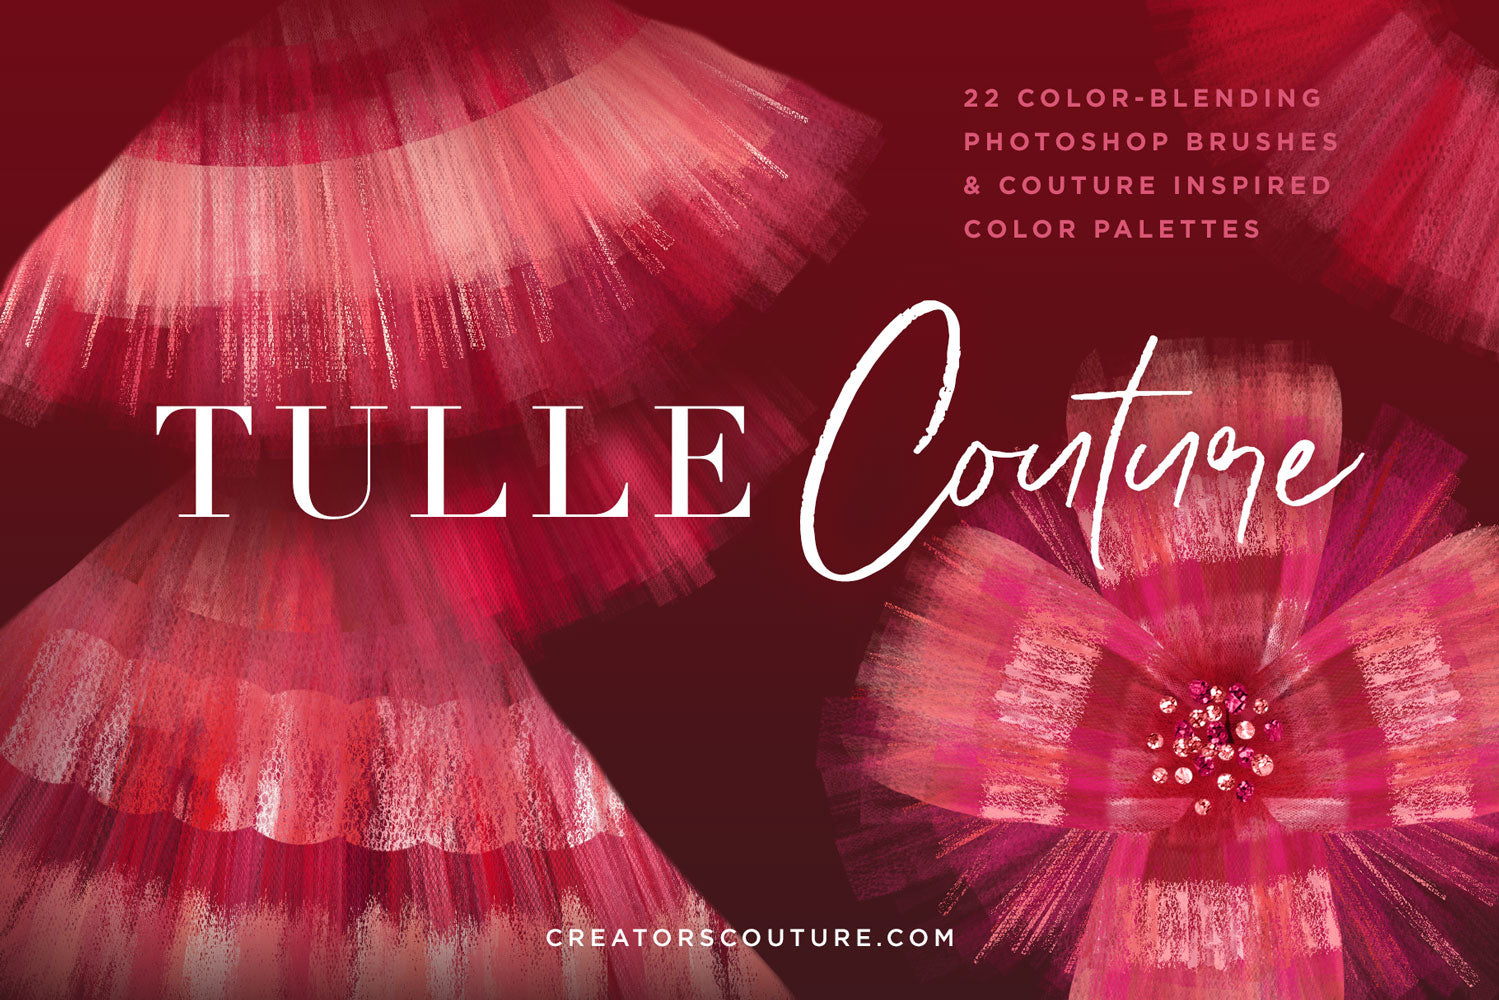 Tulle and organza couture multi-color Photoshop brushes, cover image